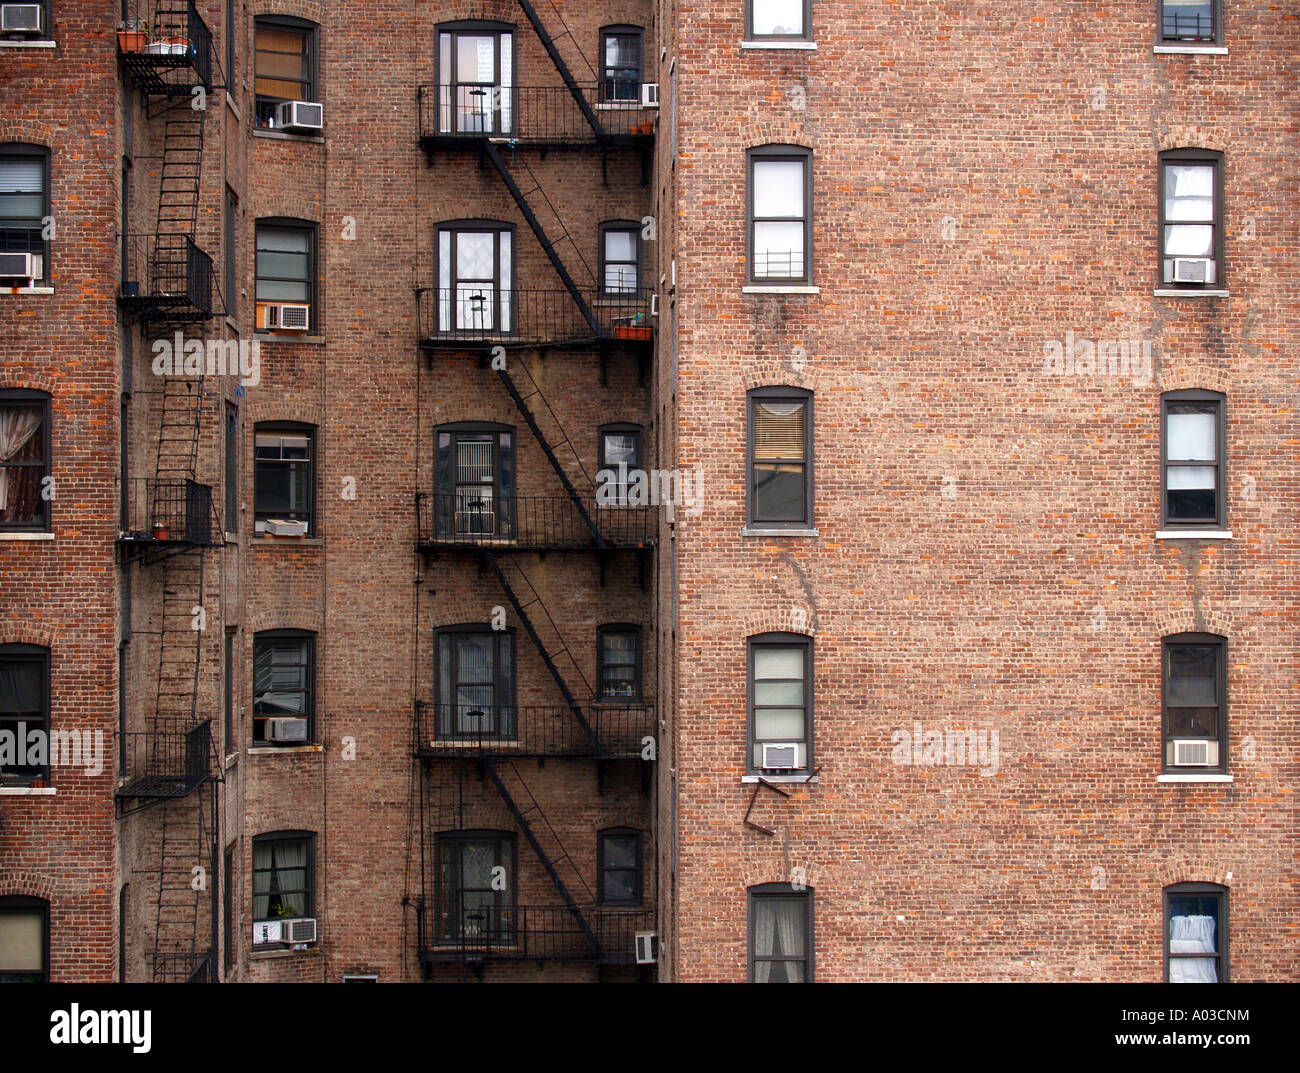 Brick Walls And Windows On Apartment Buildings In Manhattan In New York City